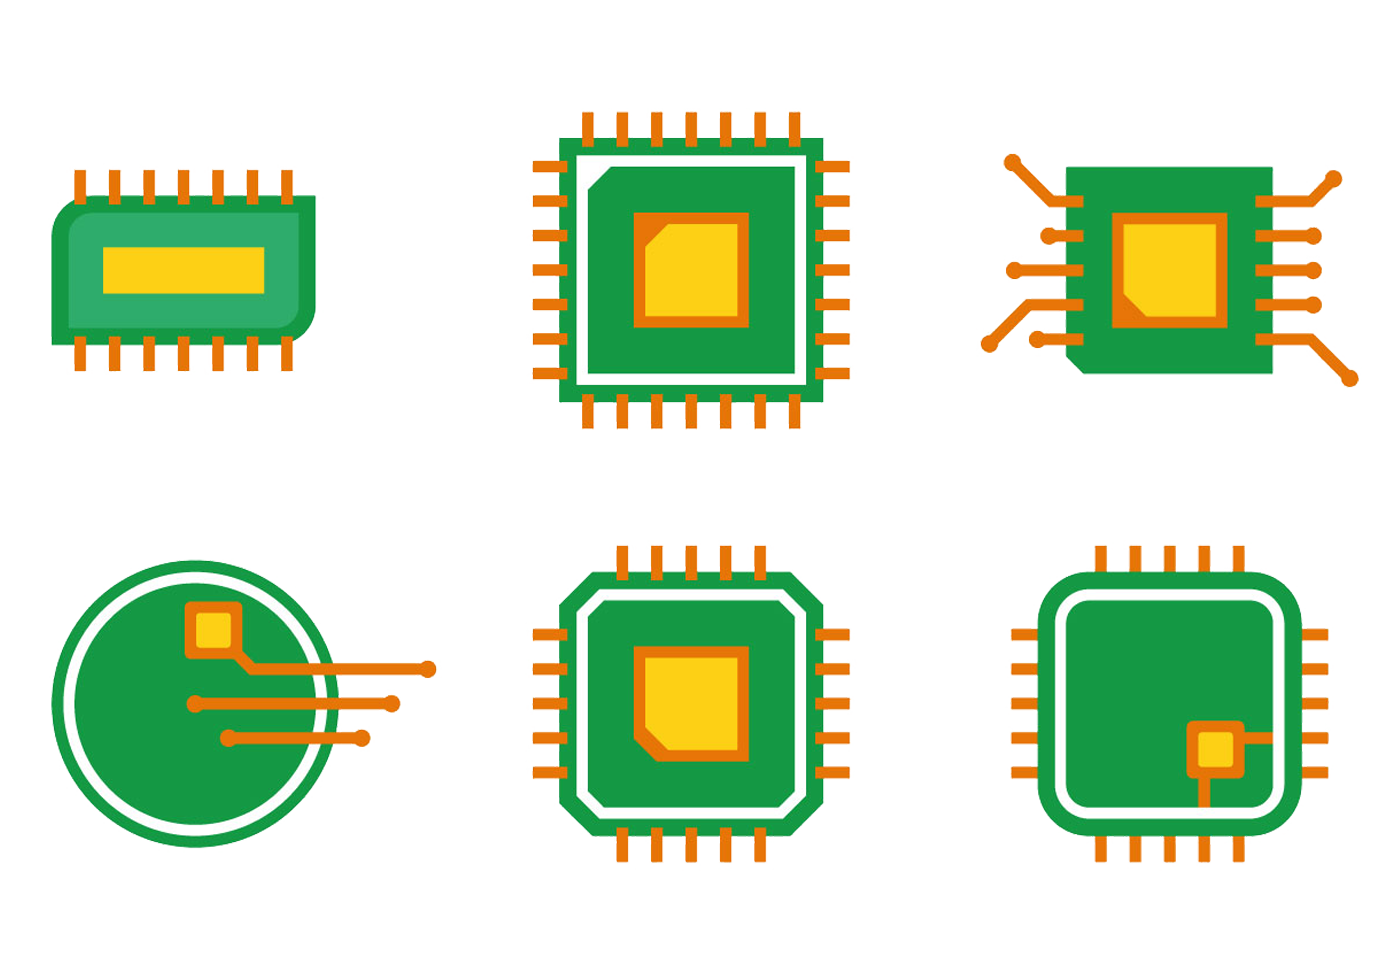 Circuit cartoon png. Integrated printed board icon